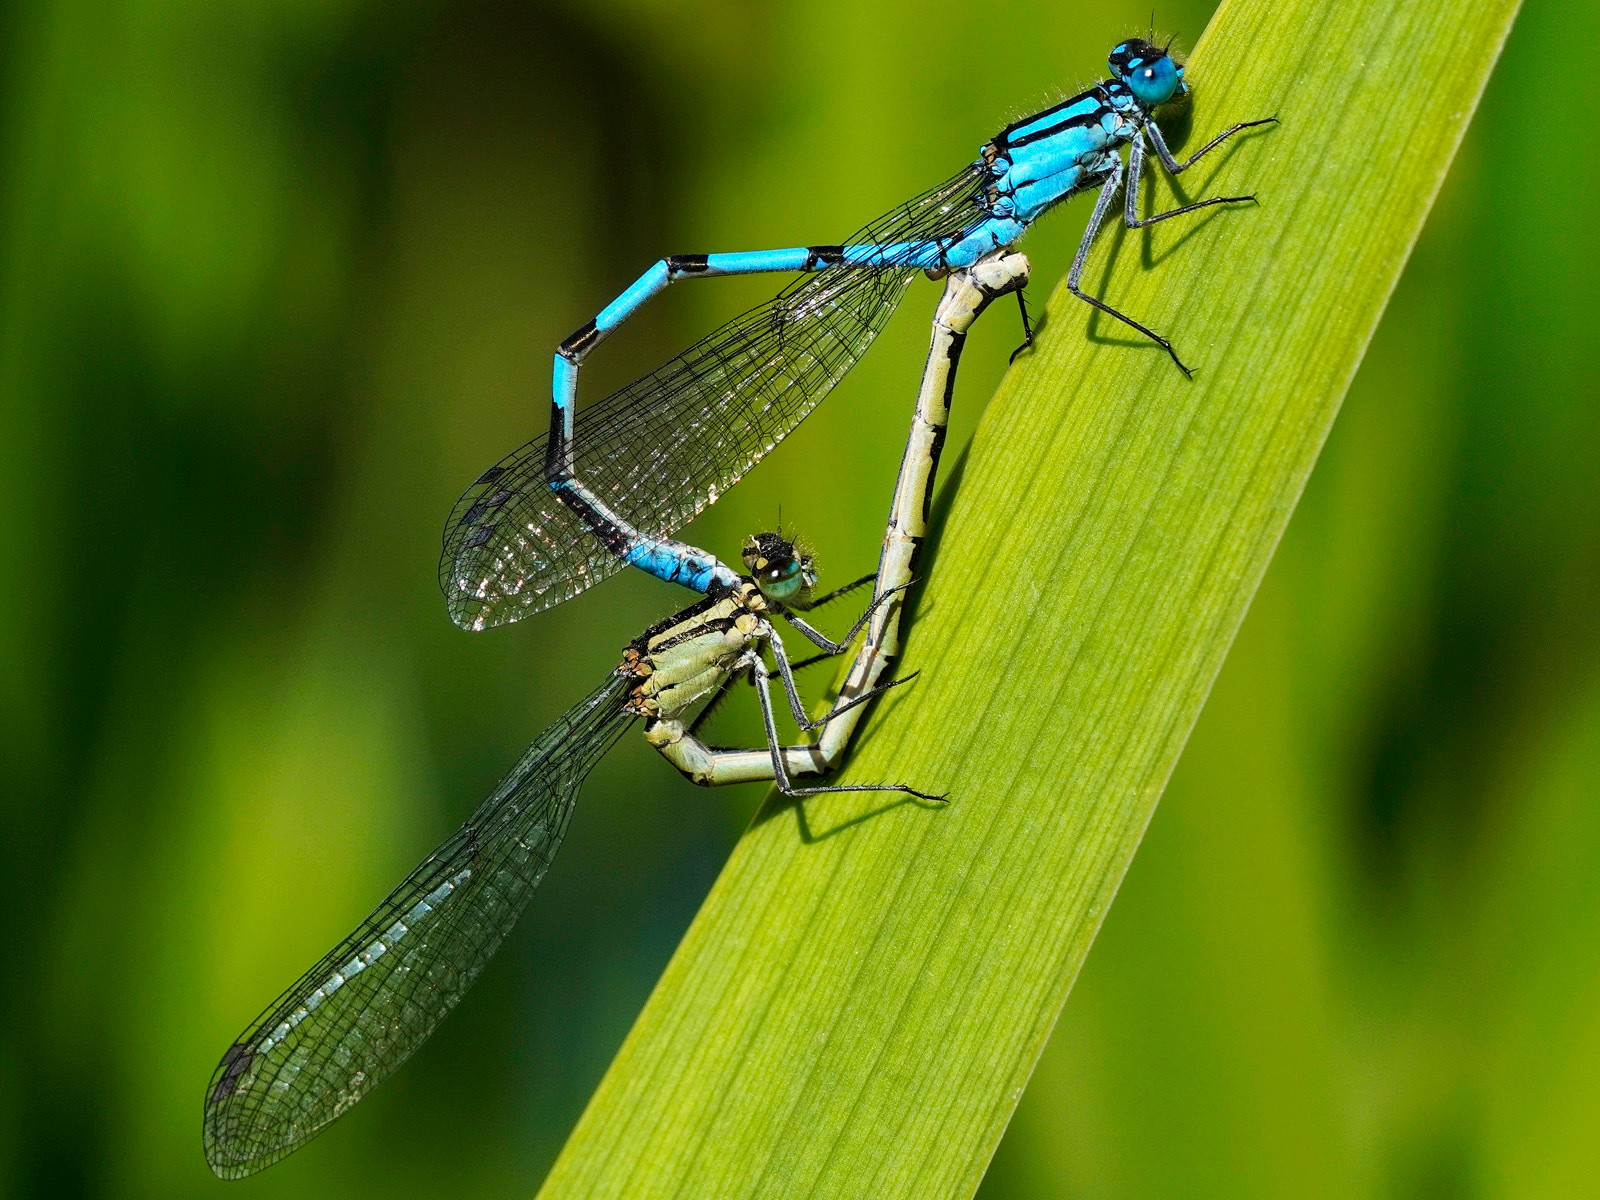 COLOUR - Mating Damselflies by Rowland White (13 marks) - Starred